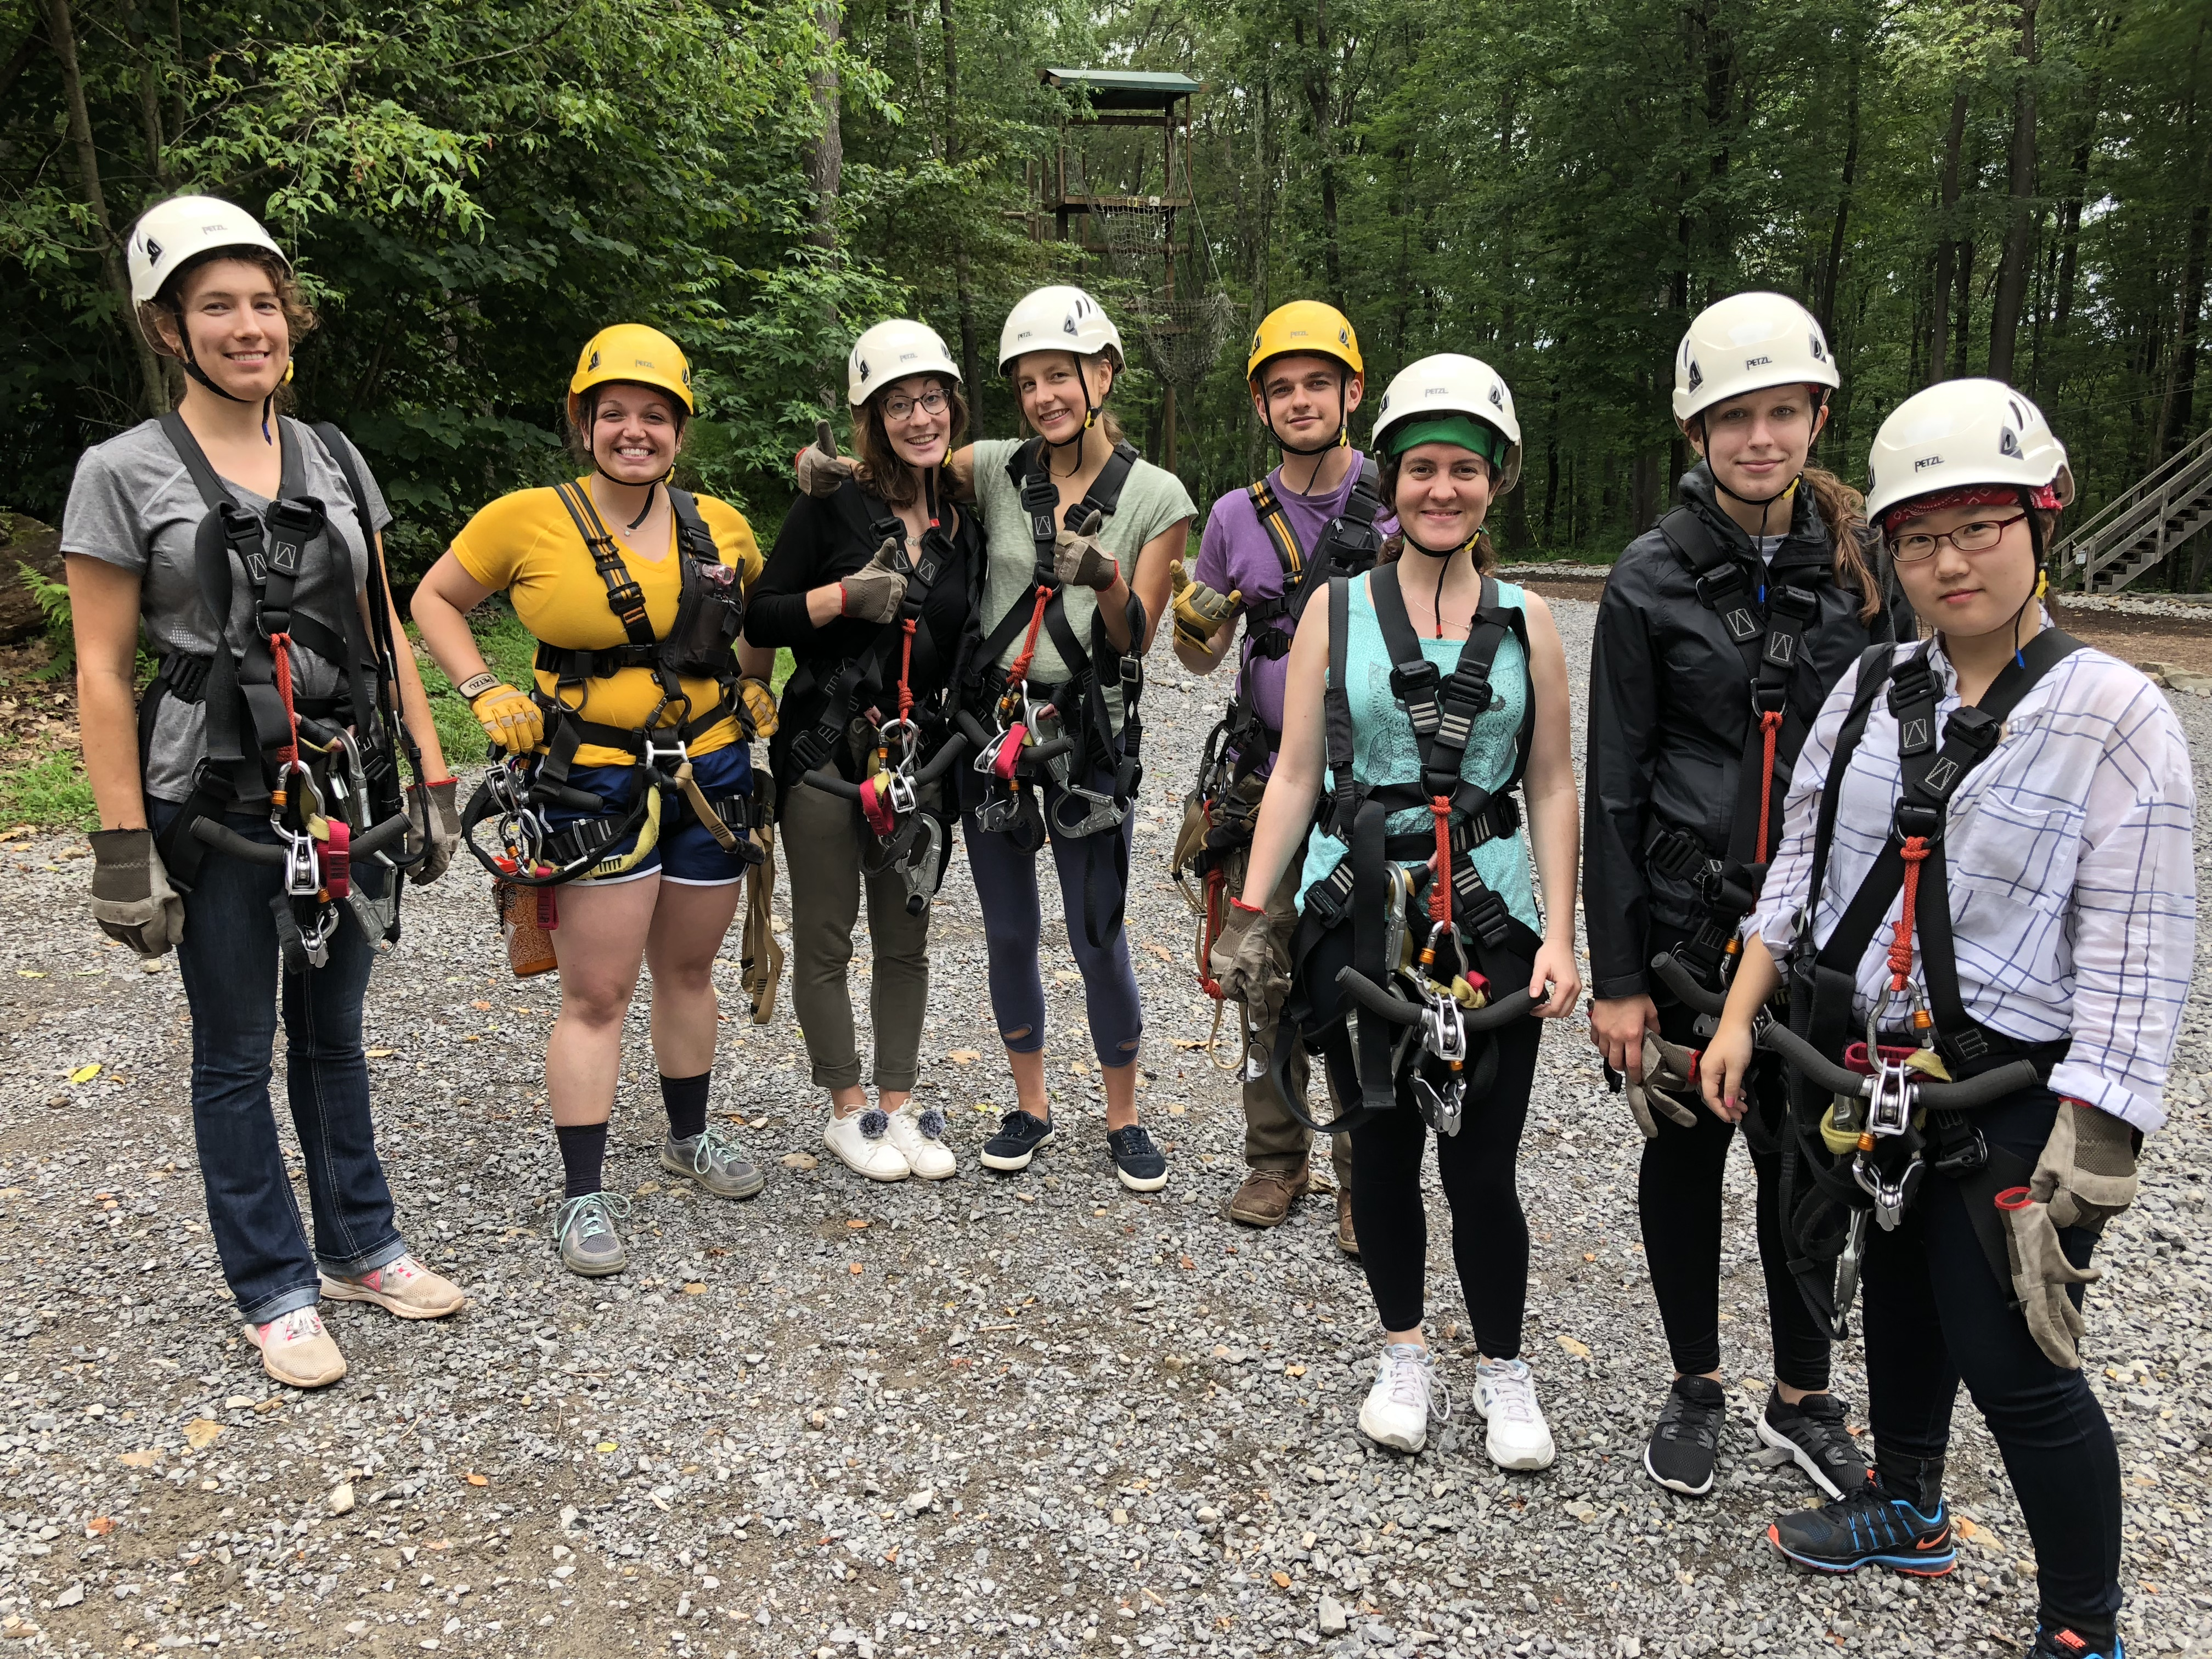 Students gather following the zip line tour